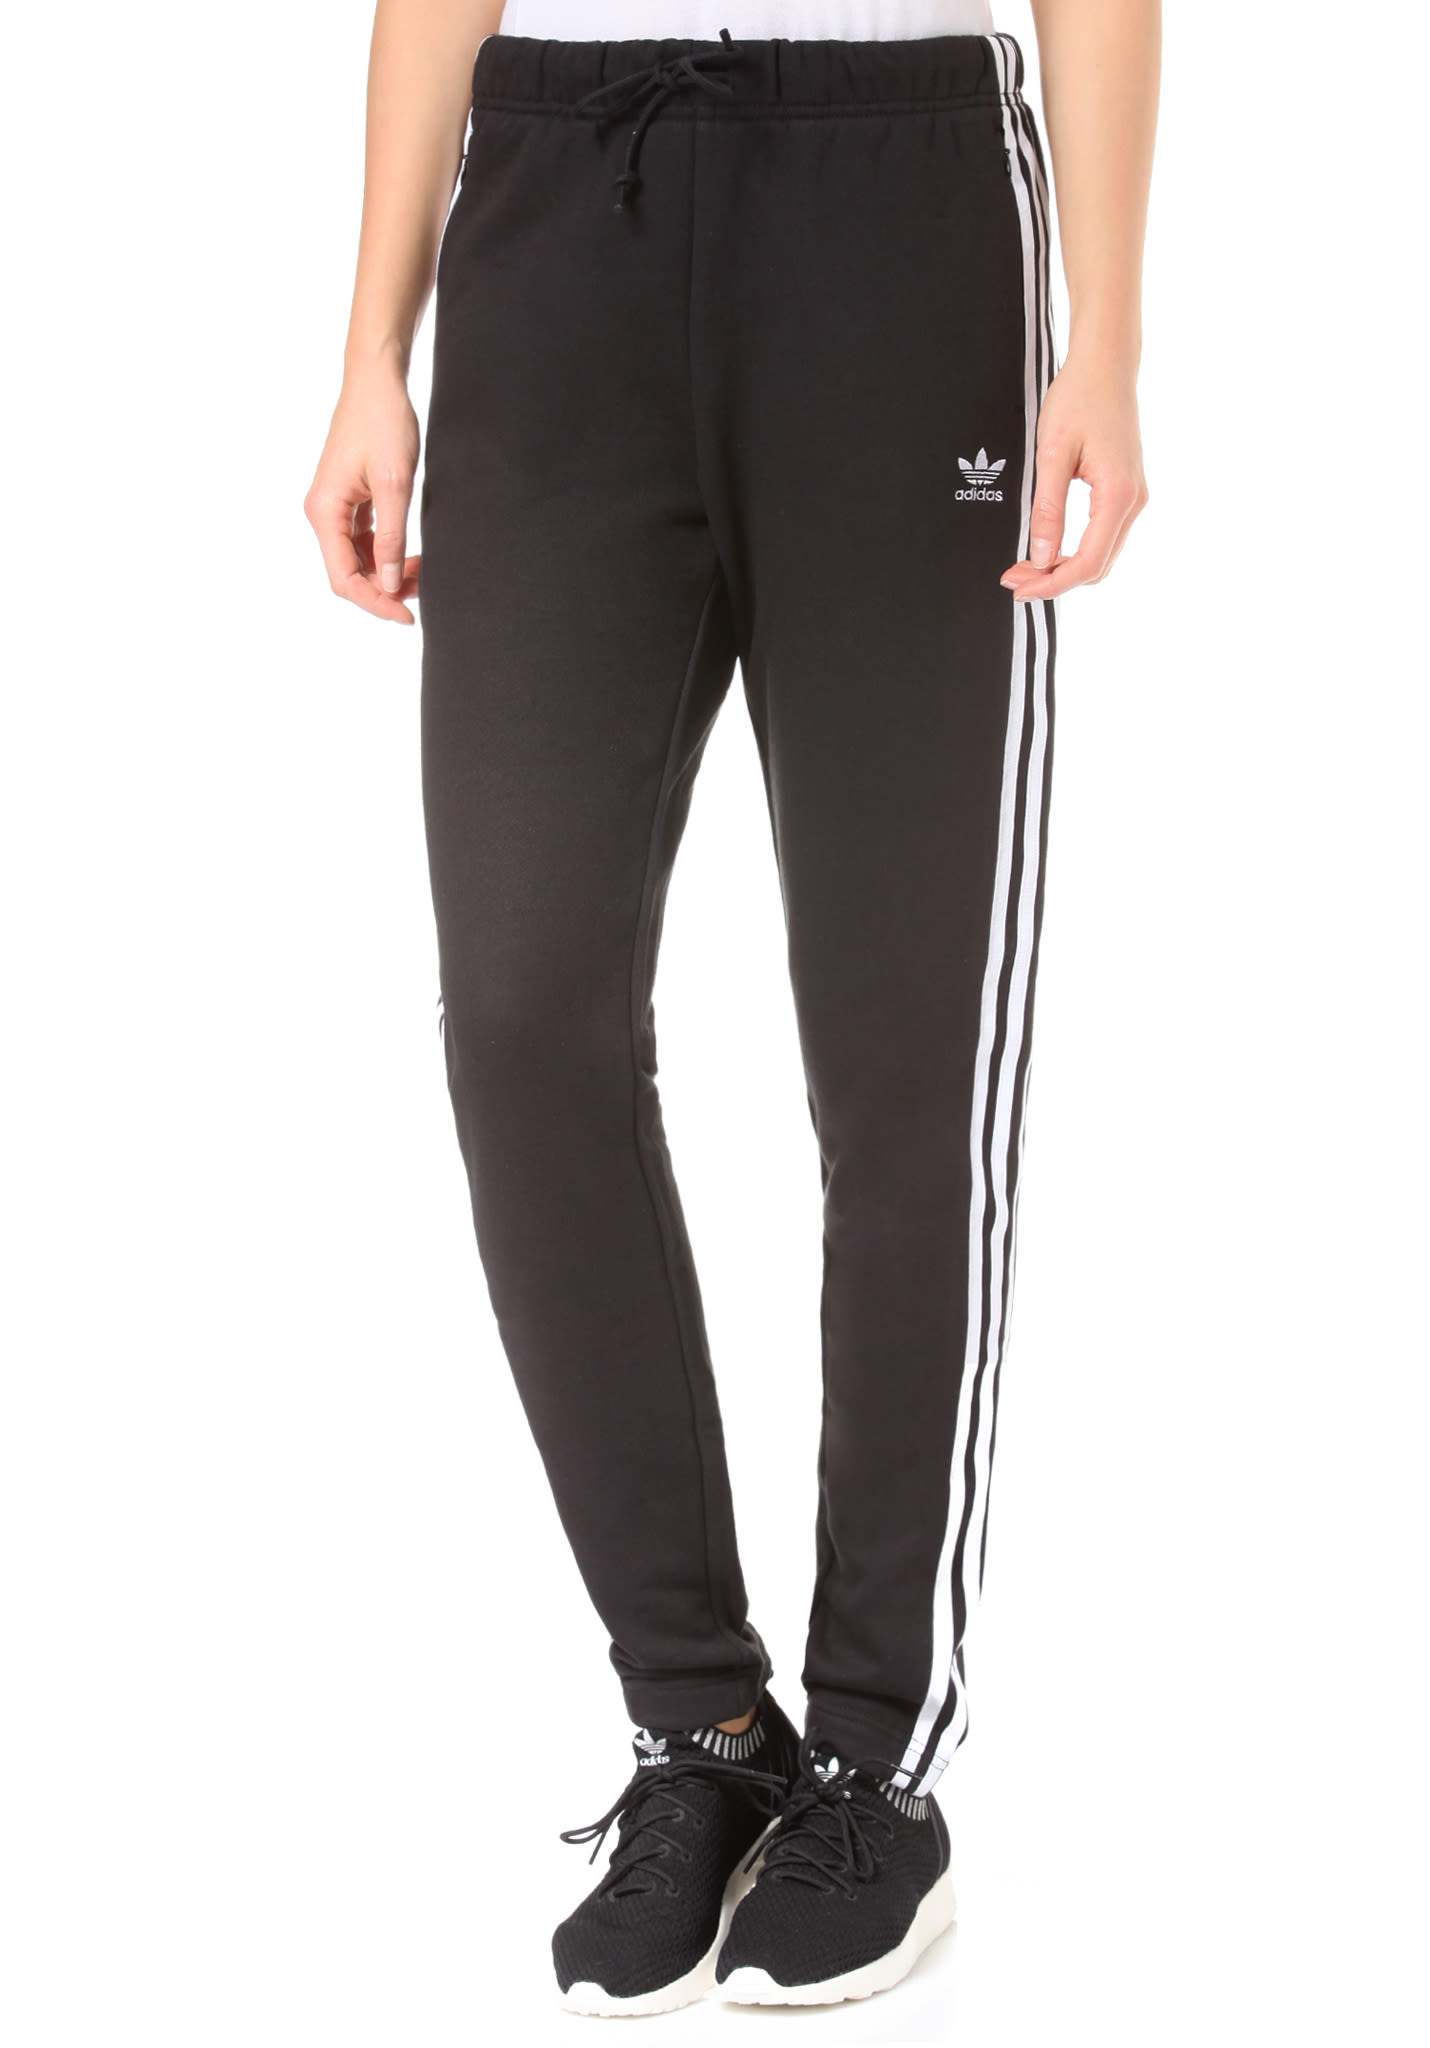 6f7ed4e0e8eb7 ADIDAS ORIGINALS Regular Cuffed - Pantalon de survêtement pour Femme - Noir  - Planet Sports